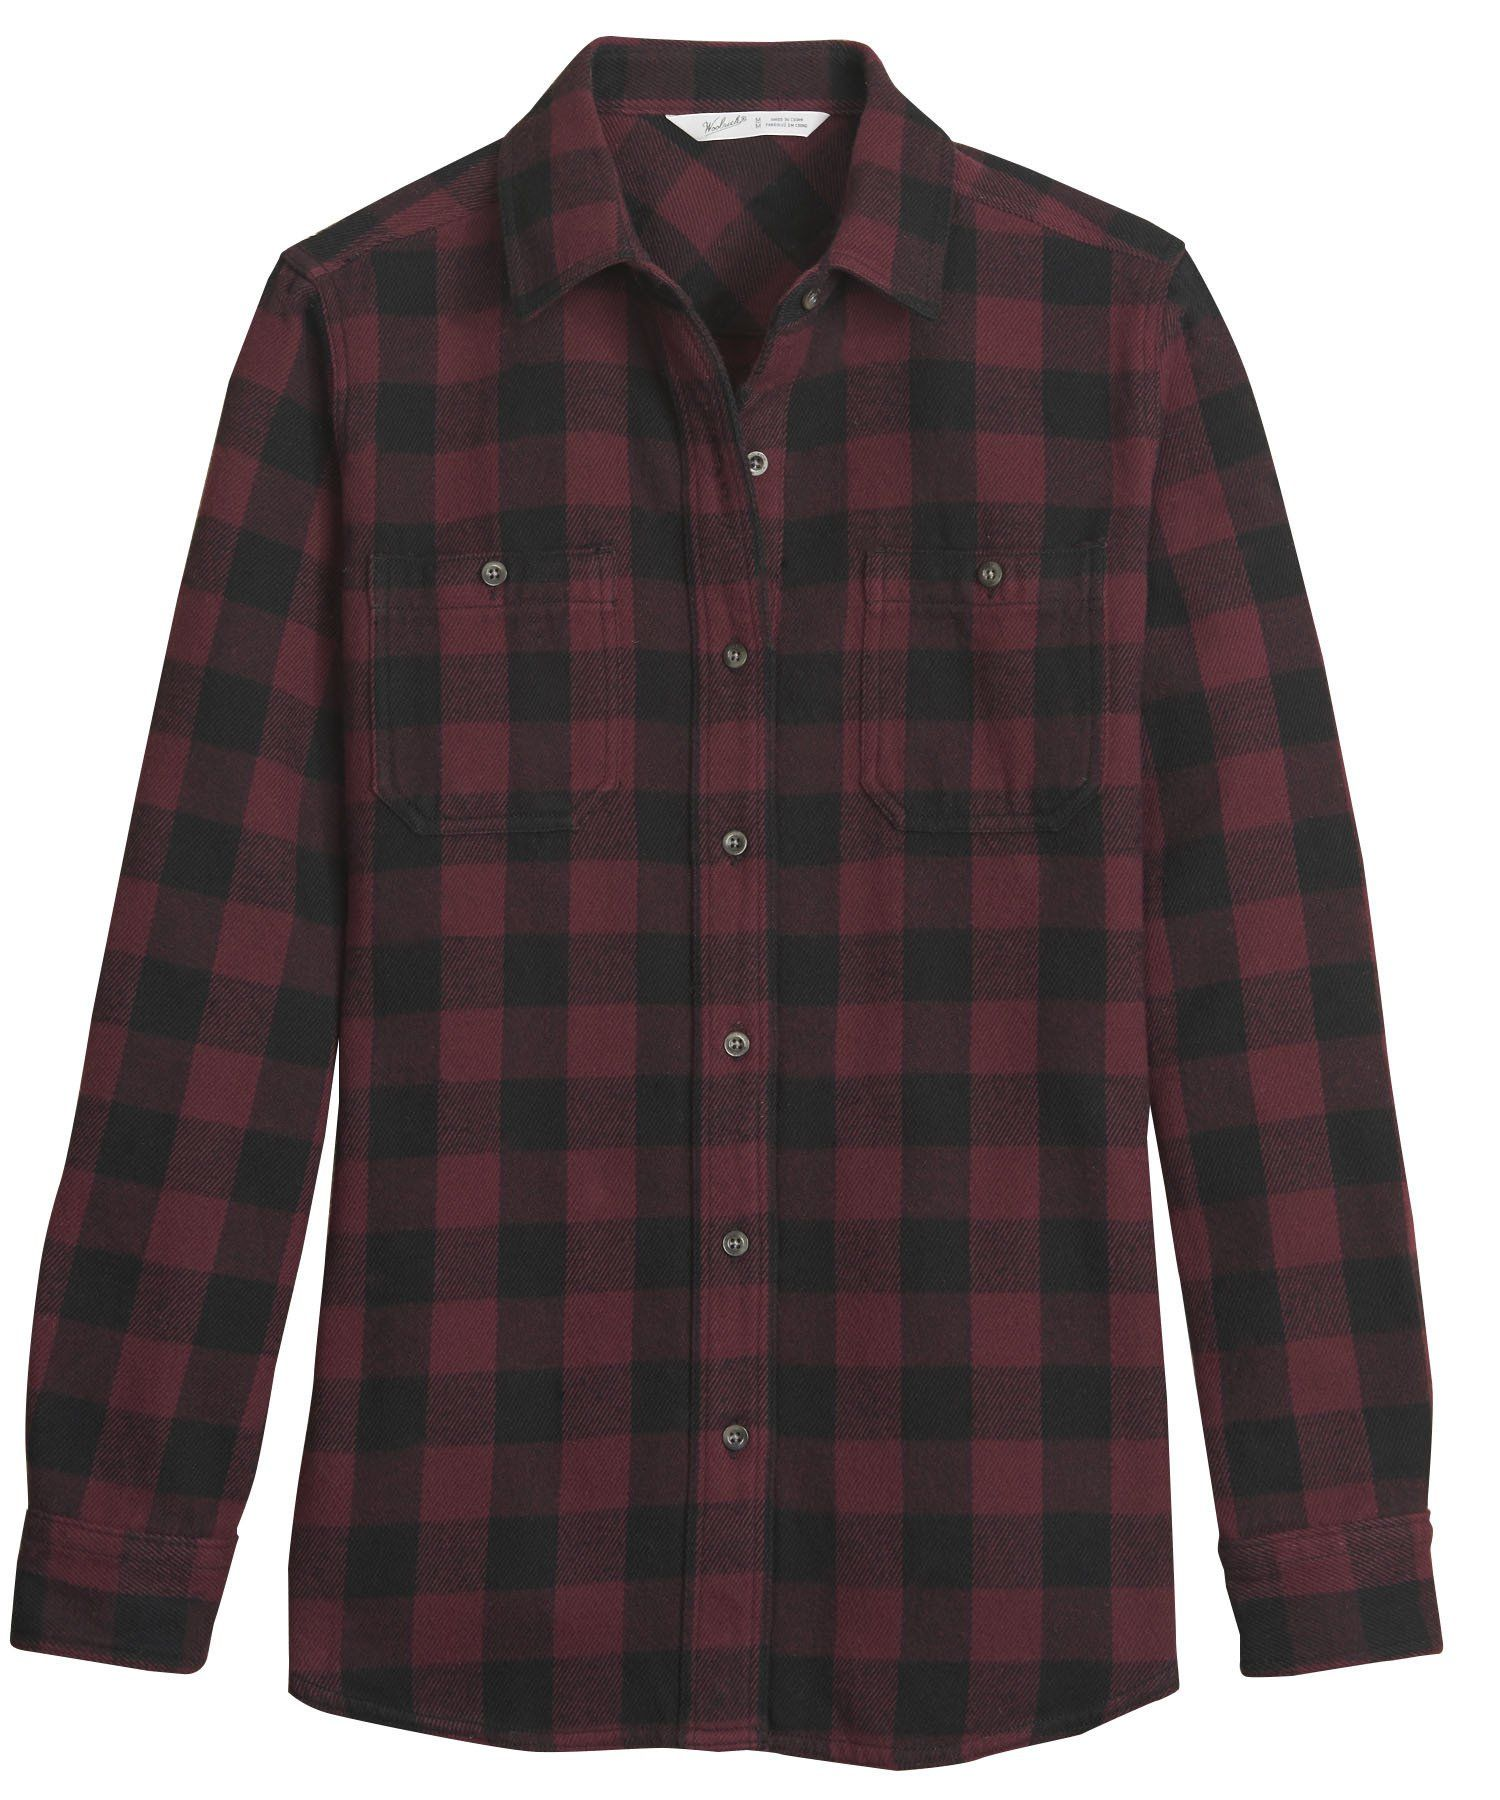 1f1611167c9 Women s Buffalo Check Flannel Shirt